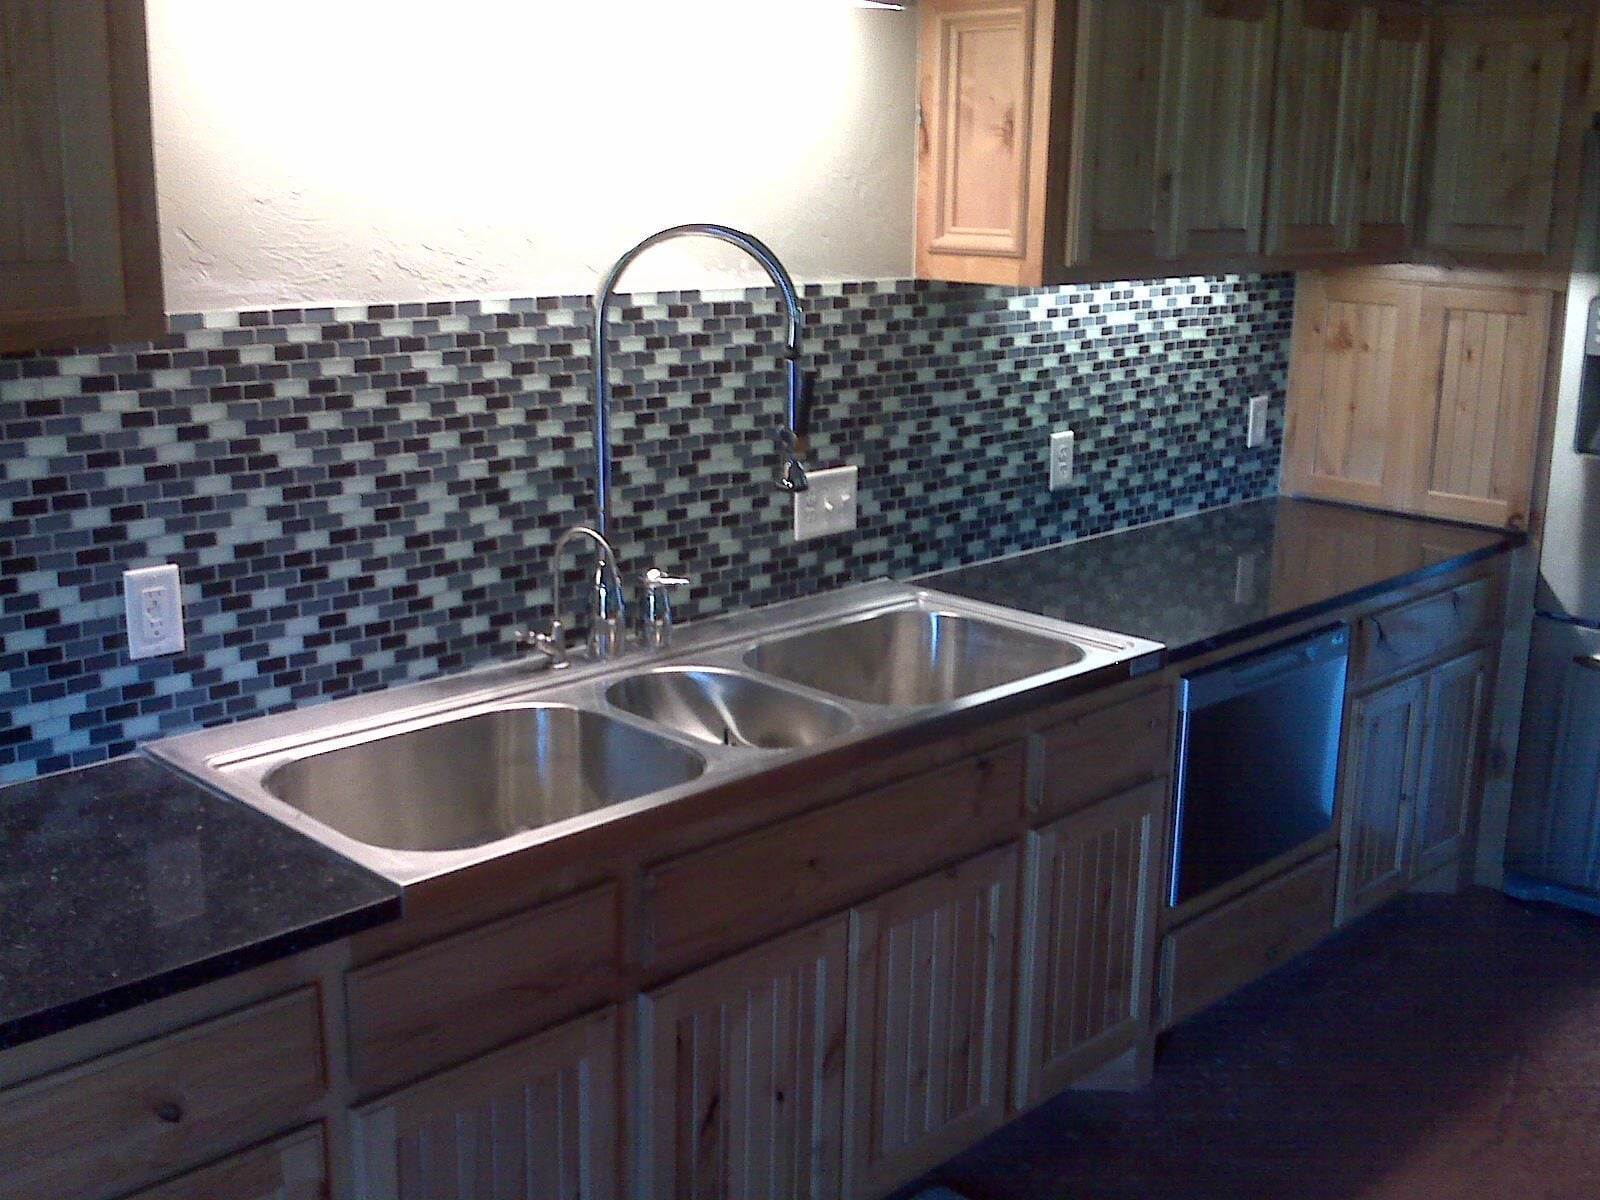 Tile backsplash from Smith Carpet & Tile Center in Edmond, OK